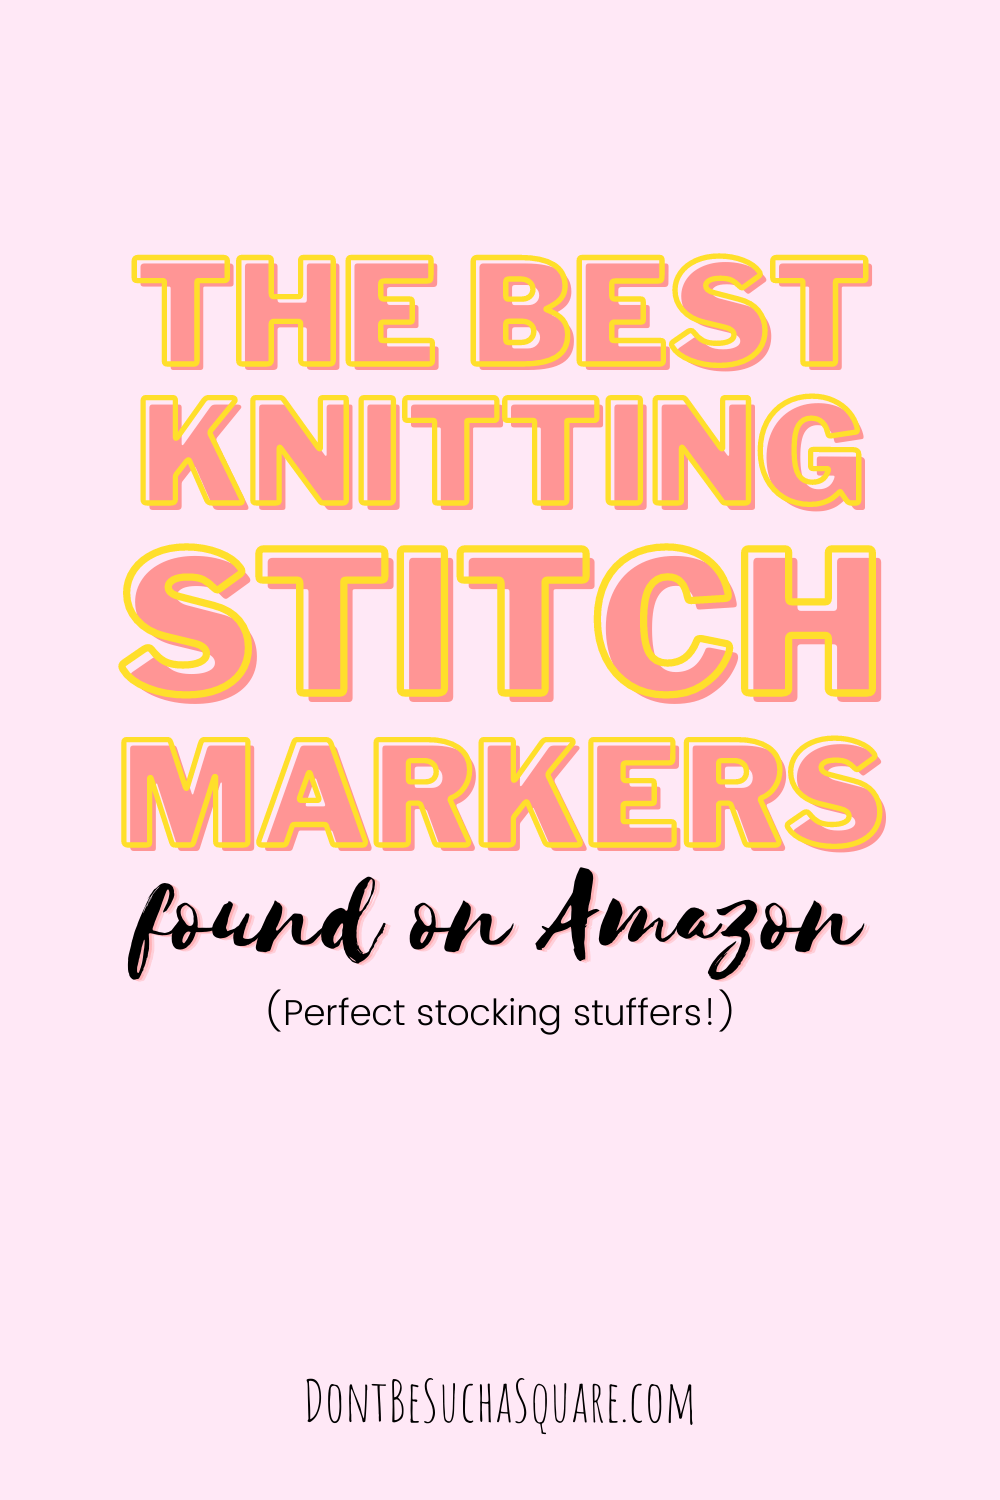 graphic saying The best knitting stitch markers